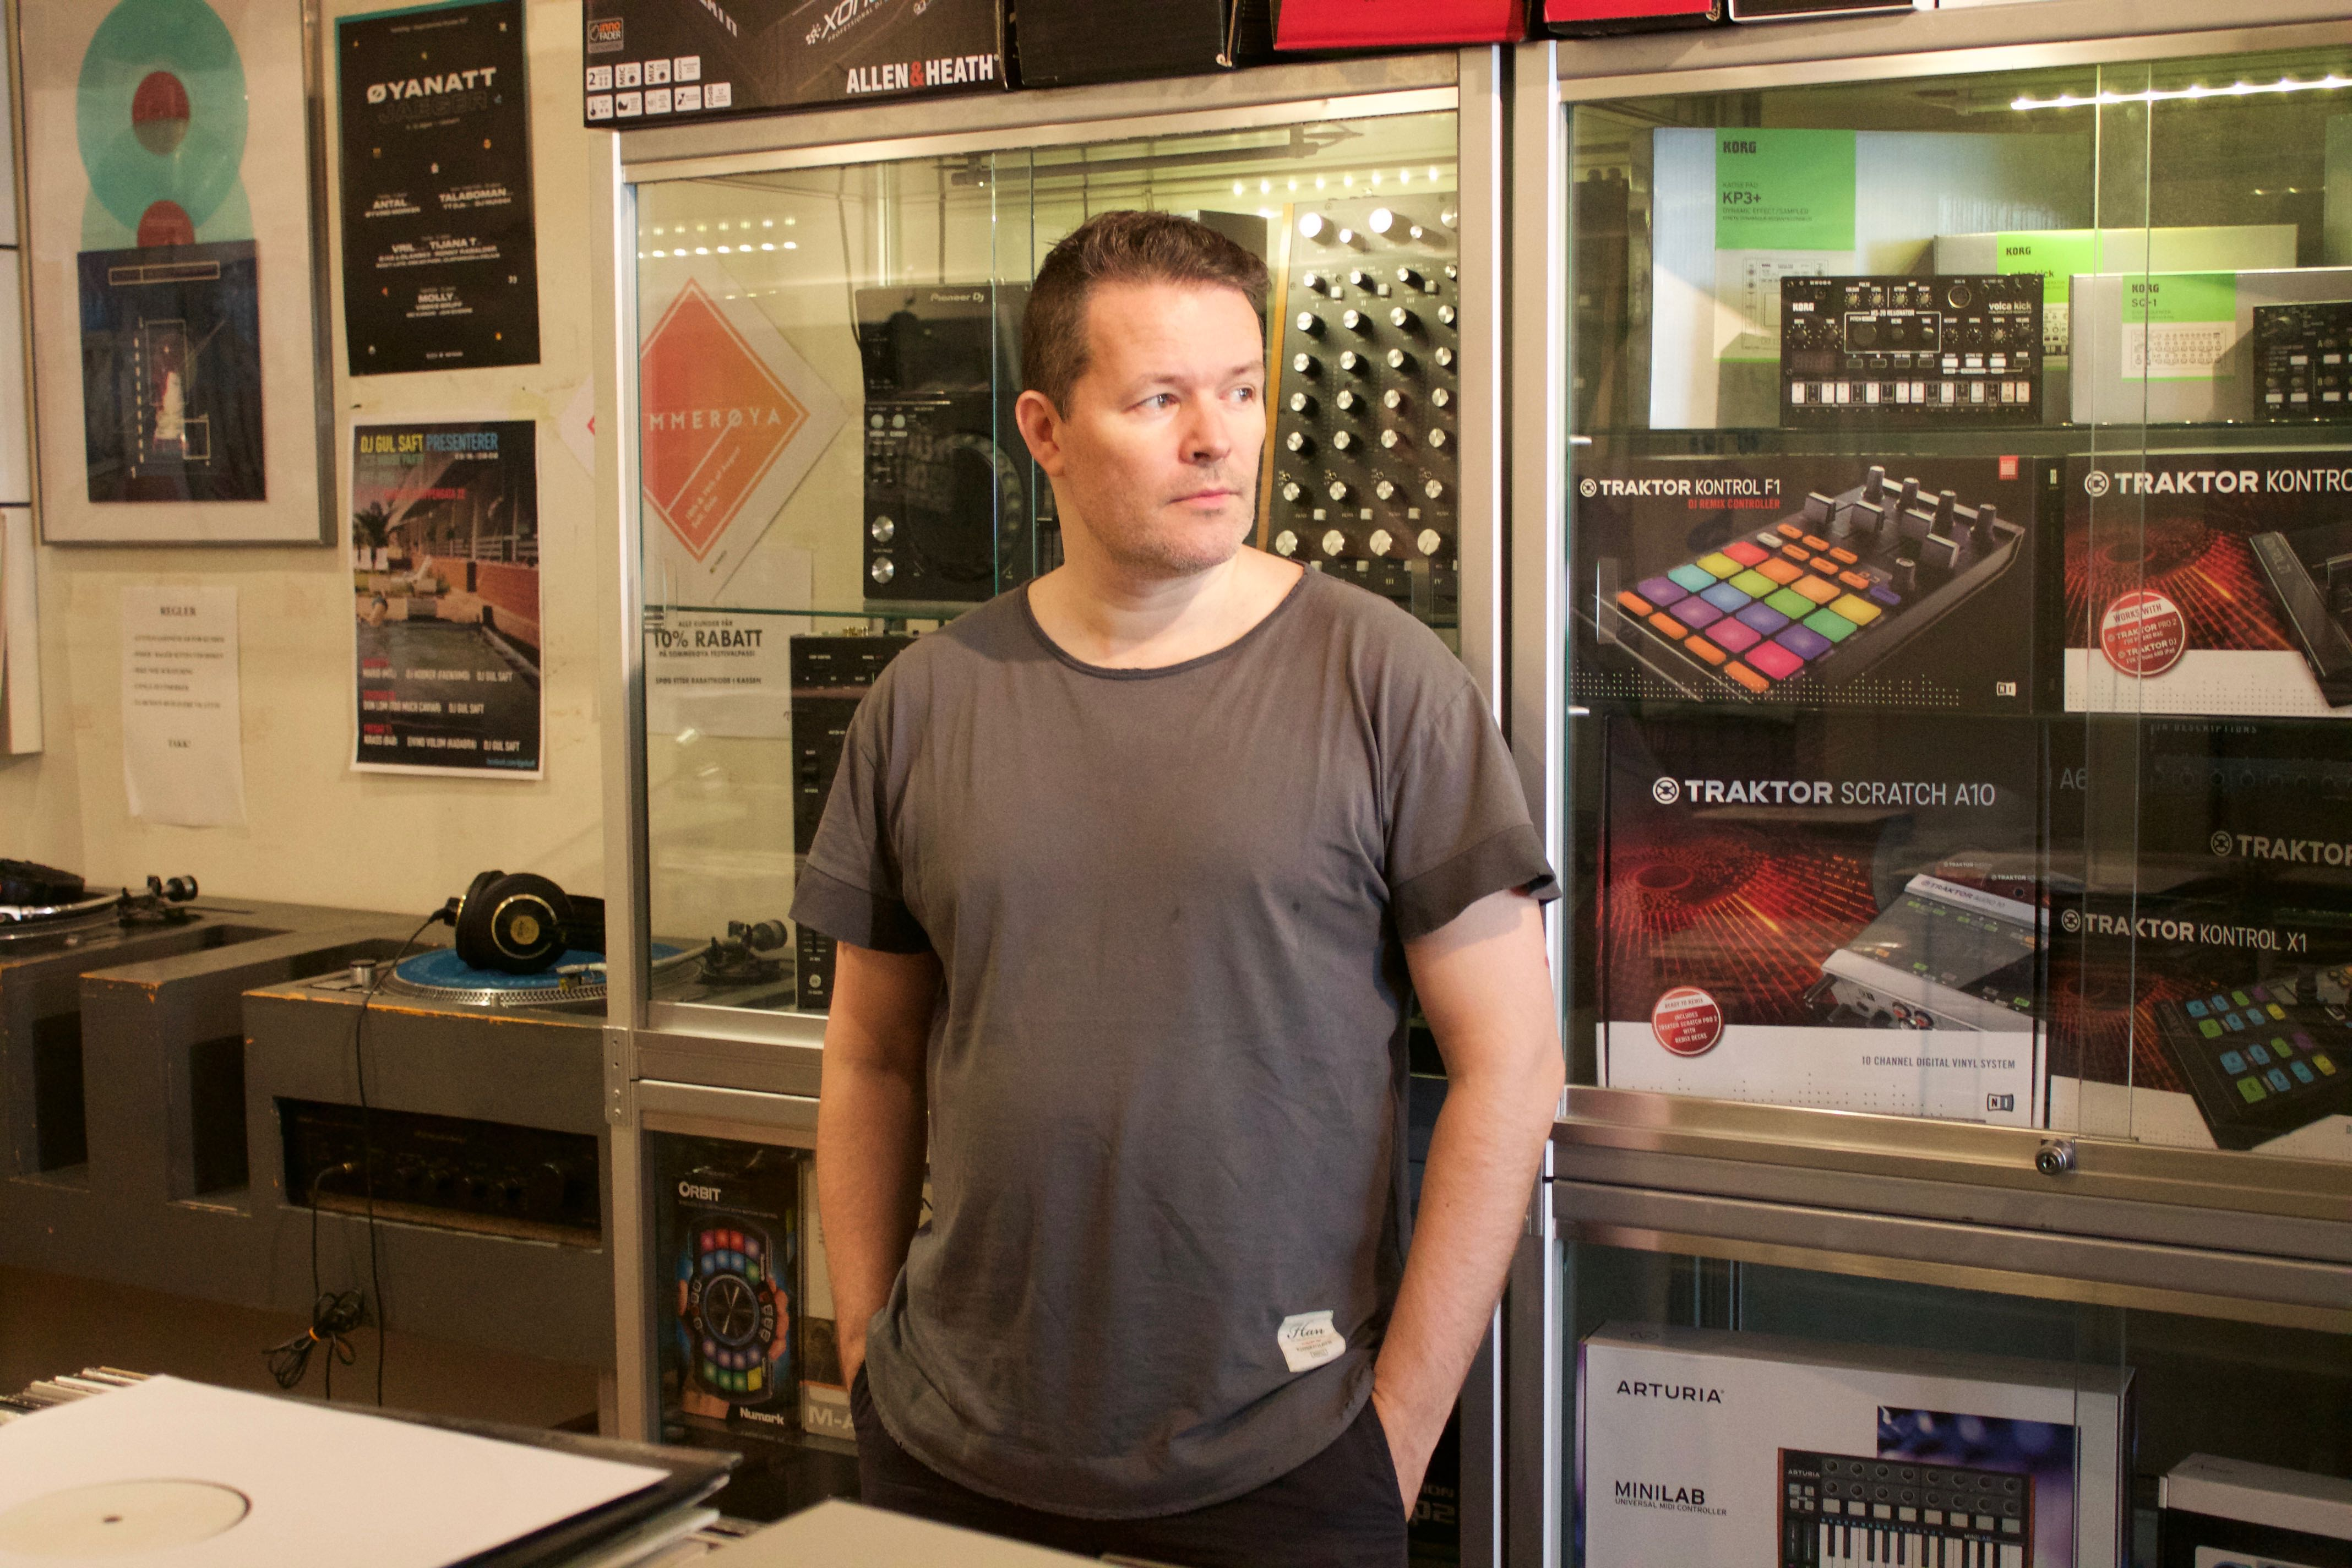 Read the story of Filter Musikk over on Monument